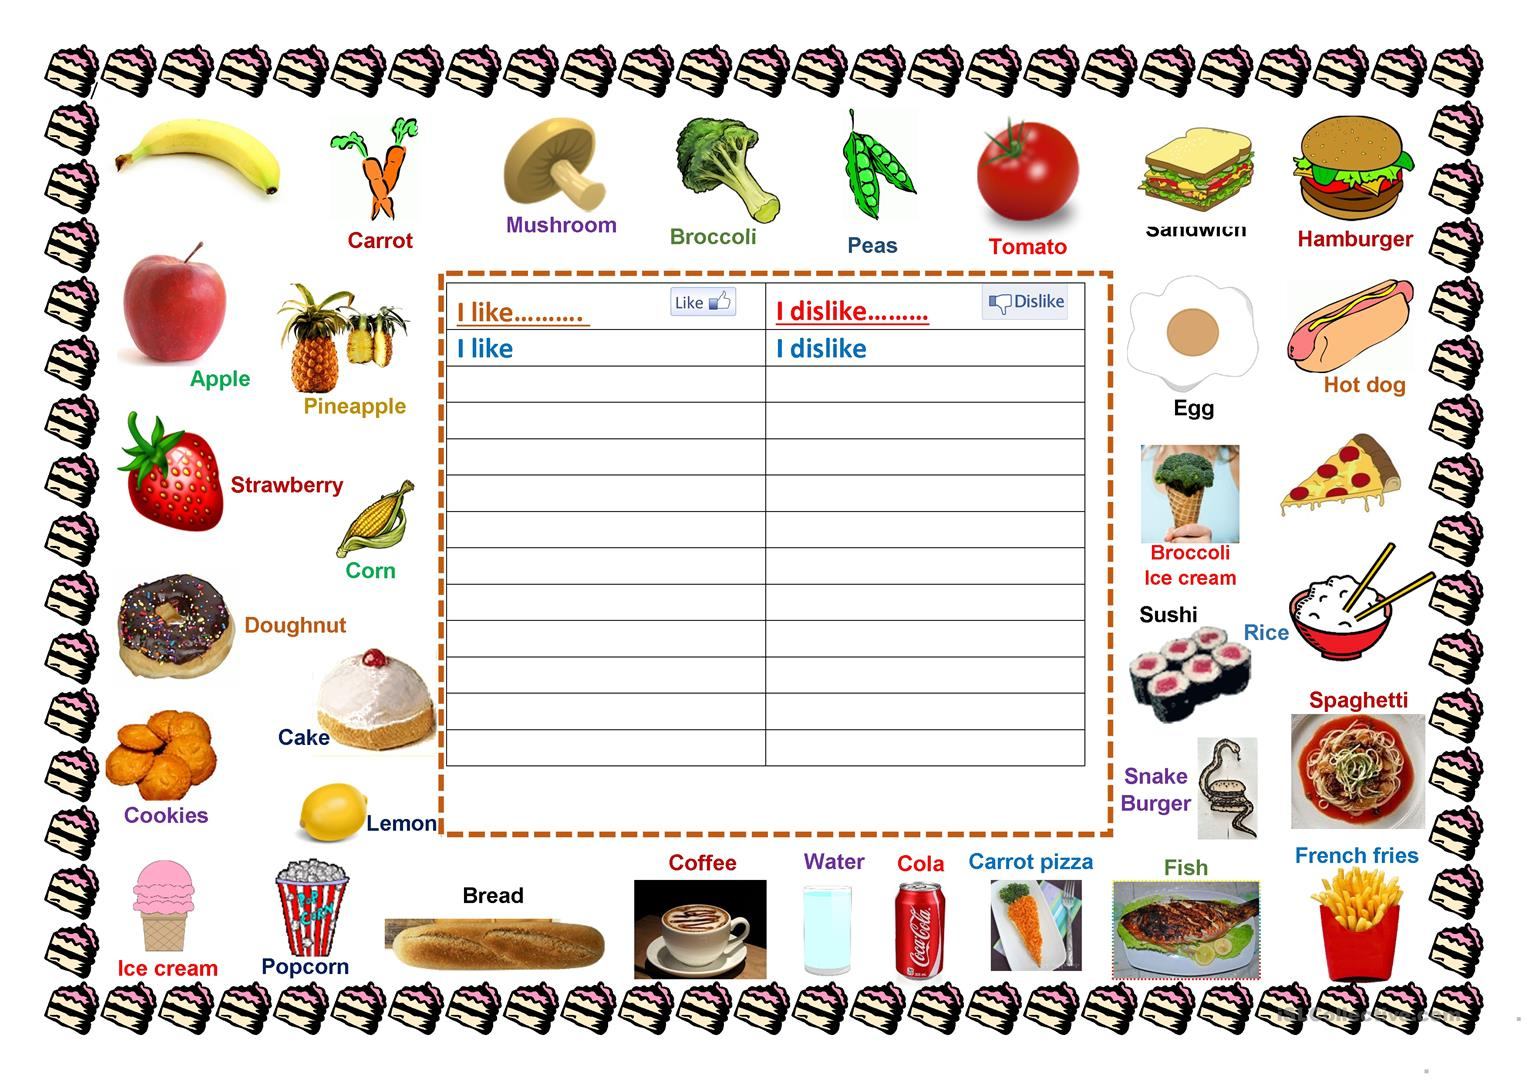 Foods I Like & Dislike Worksheet - Free Esl Printable Worksheets | Likes And Dislikes Worksheets Printable